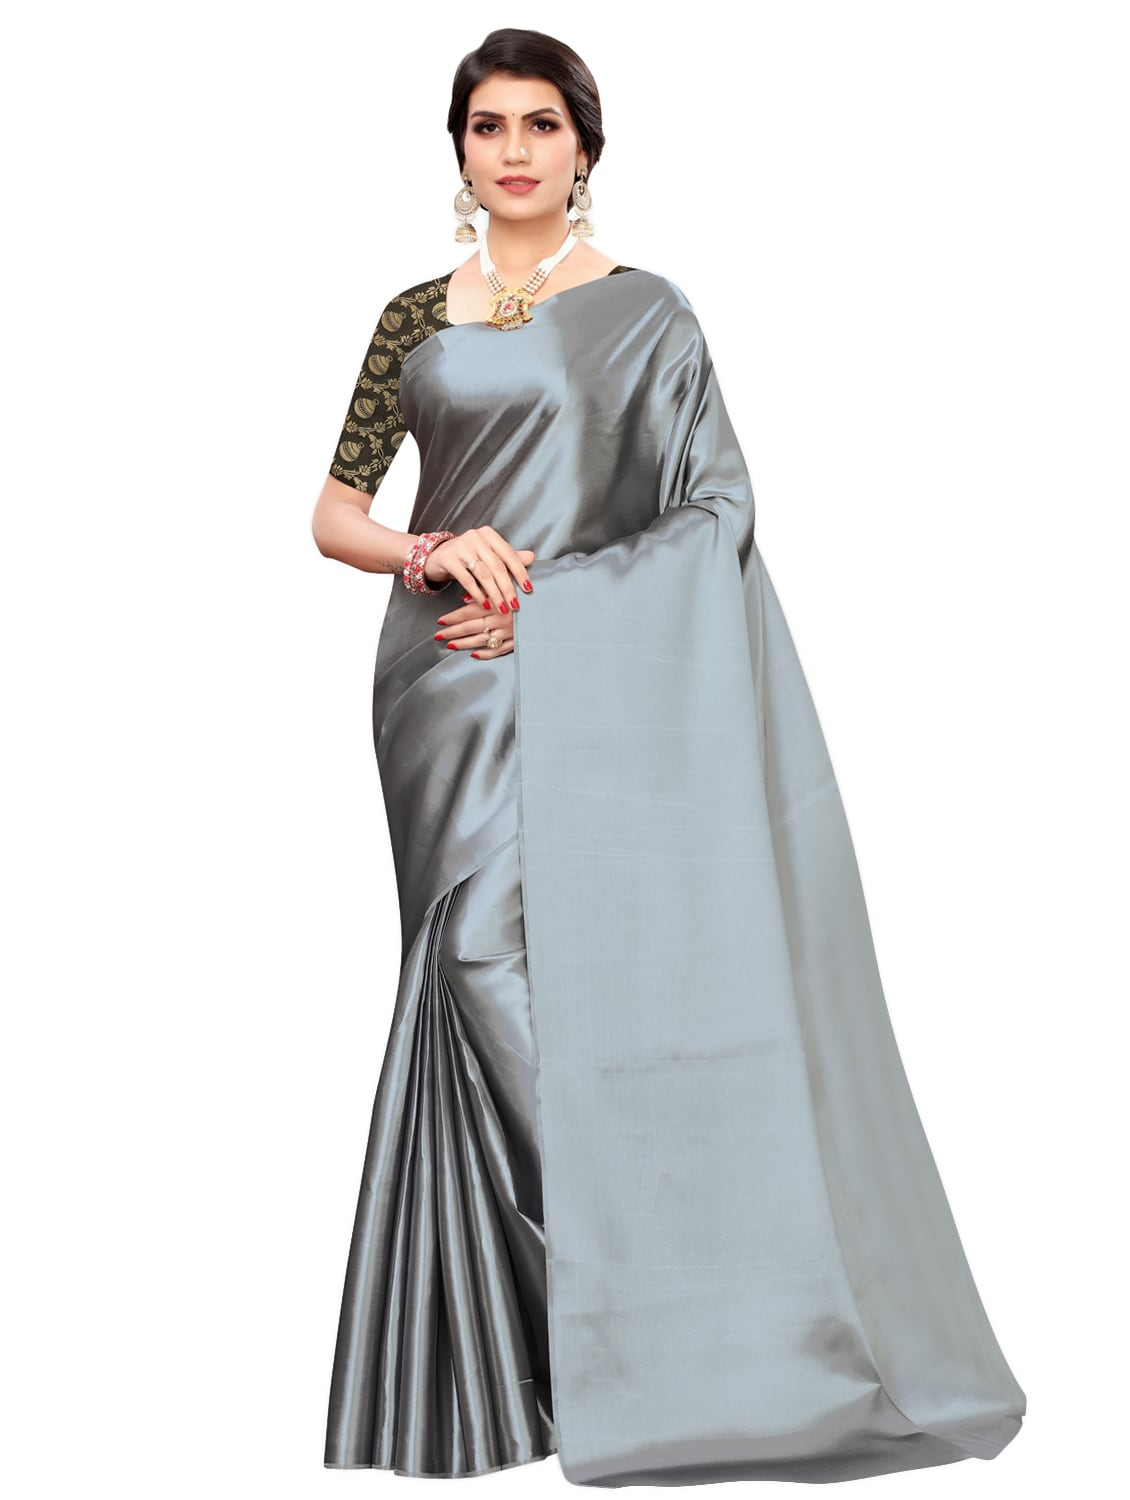 Buy Online Plain Satin Saree With Blouse From Ethnic Wear For Women By Sidhidata Textile For 657 At 67 Off 2021 Limeroad Com